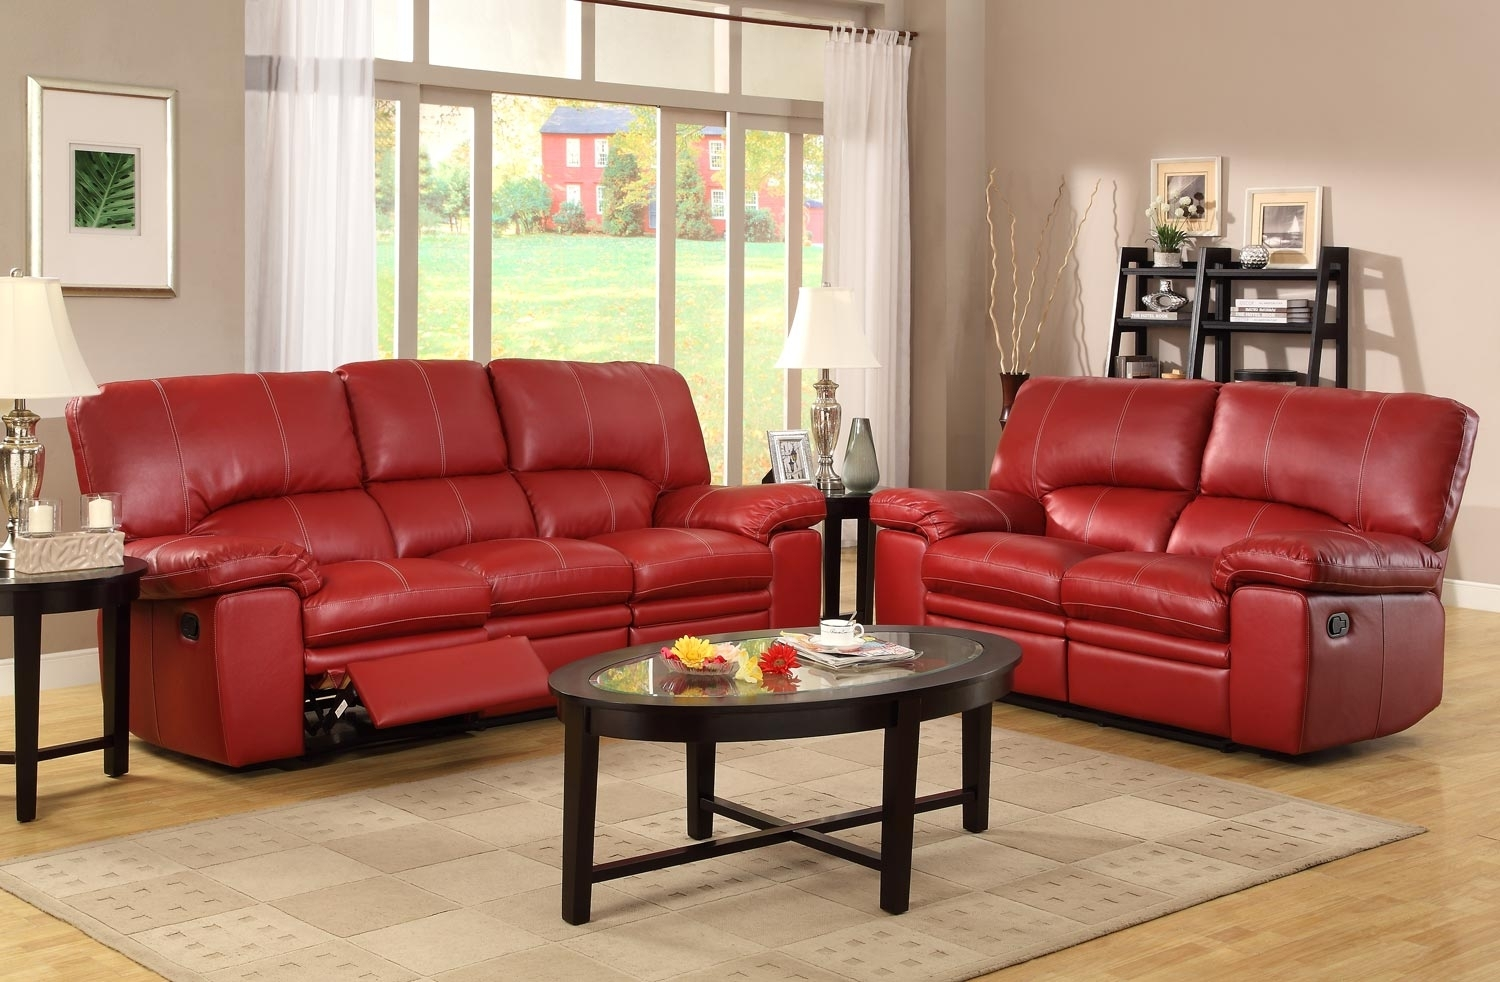 Sofa: Fascinating Red Leather Sofa Set Ashley Furniture Leather Set Throughout Red Leather Reclining Sofas And Loveseats (Image 9 of 10)